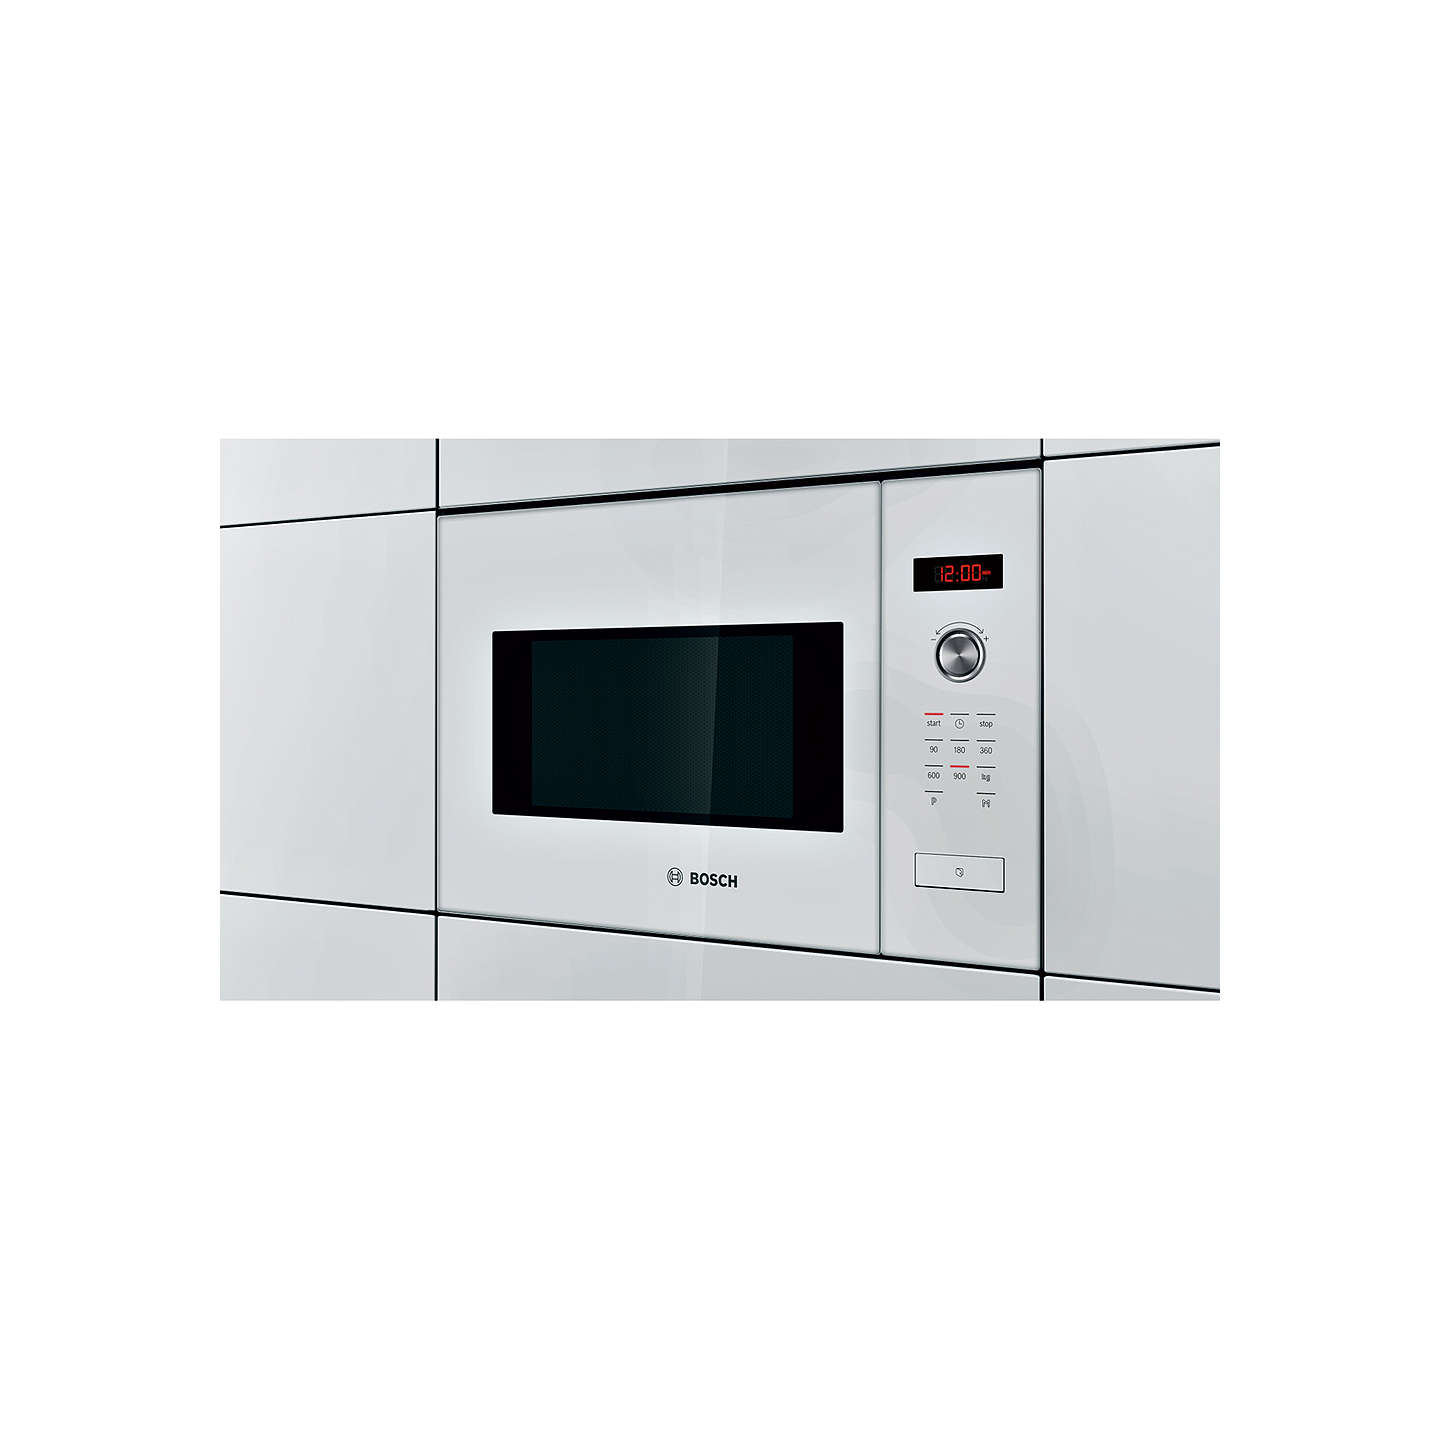 Bosch hmt84m624b built in compact microwave oven white at for Small built in microwave oven